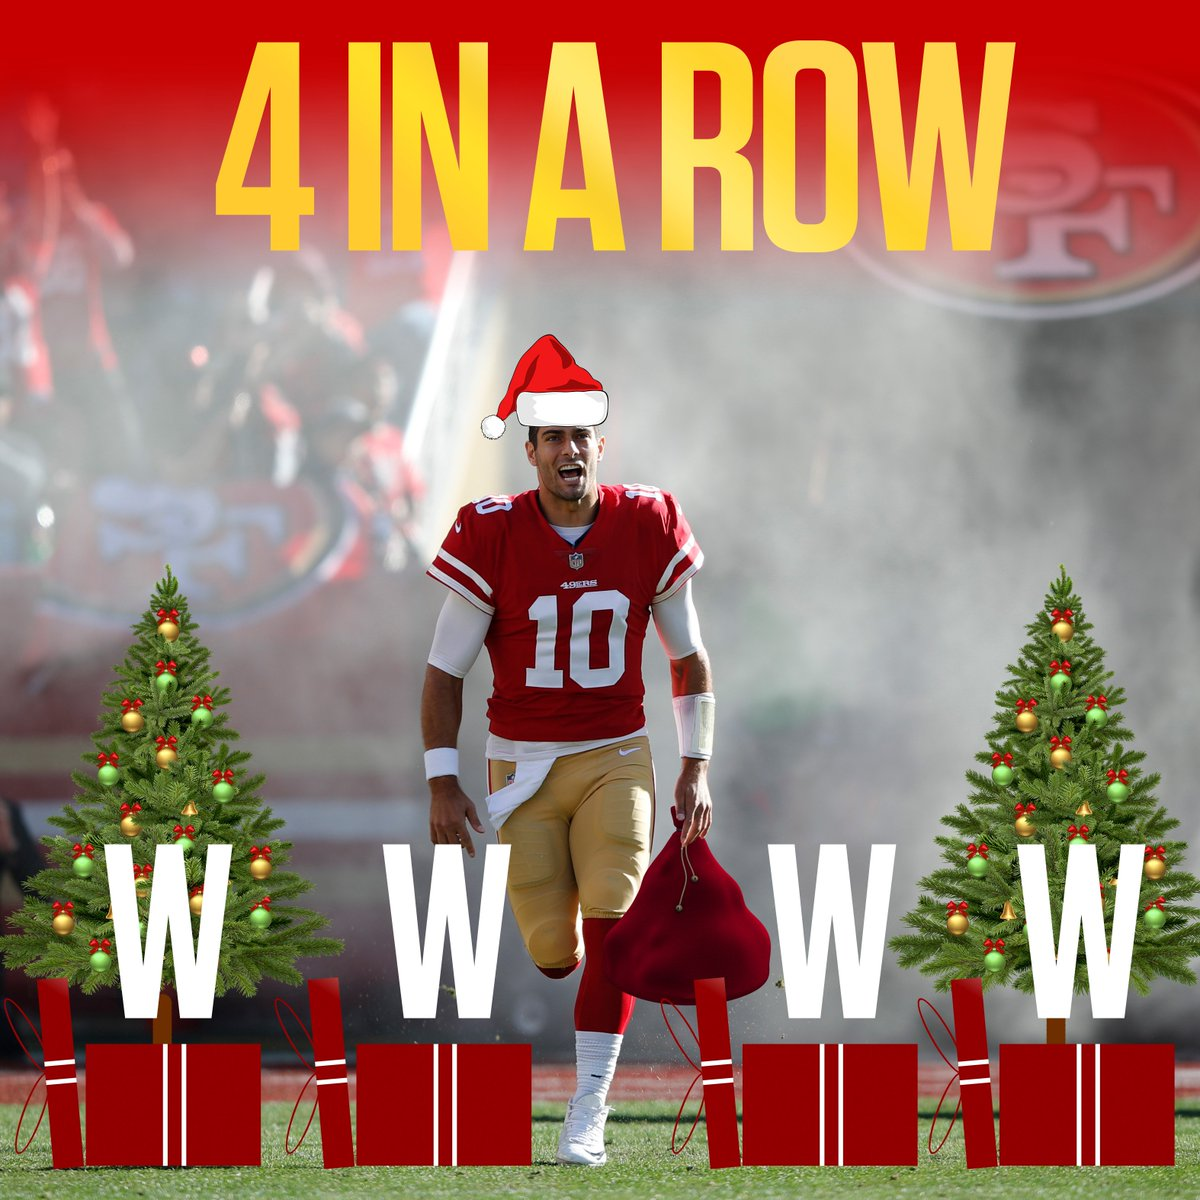 The 49ers